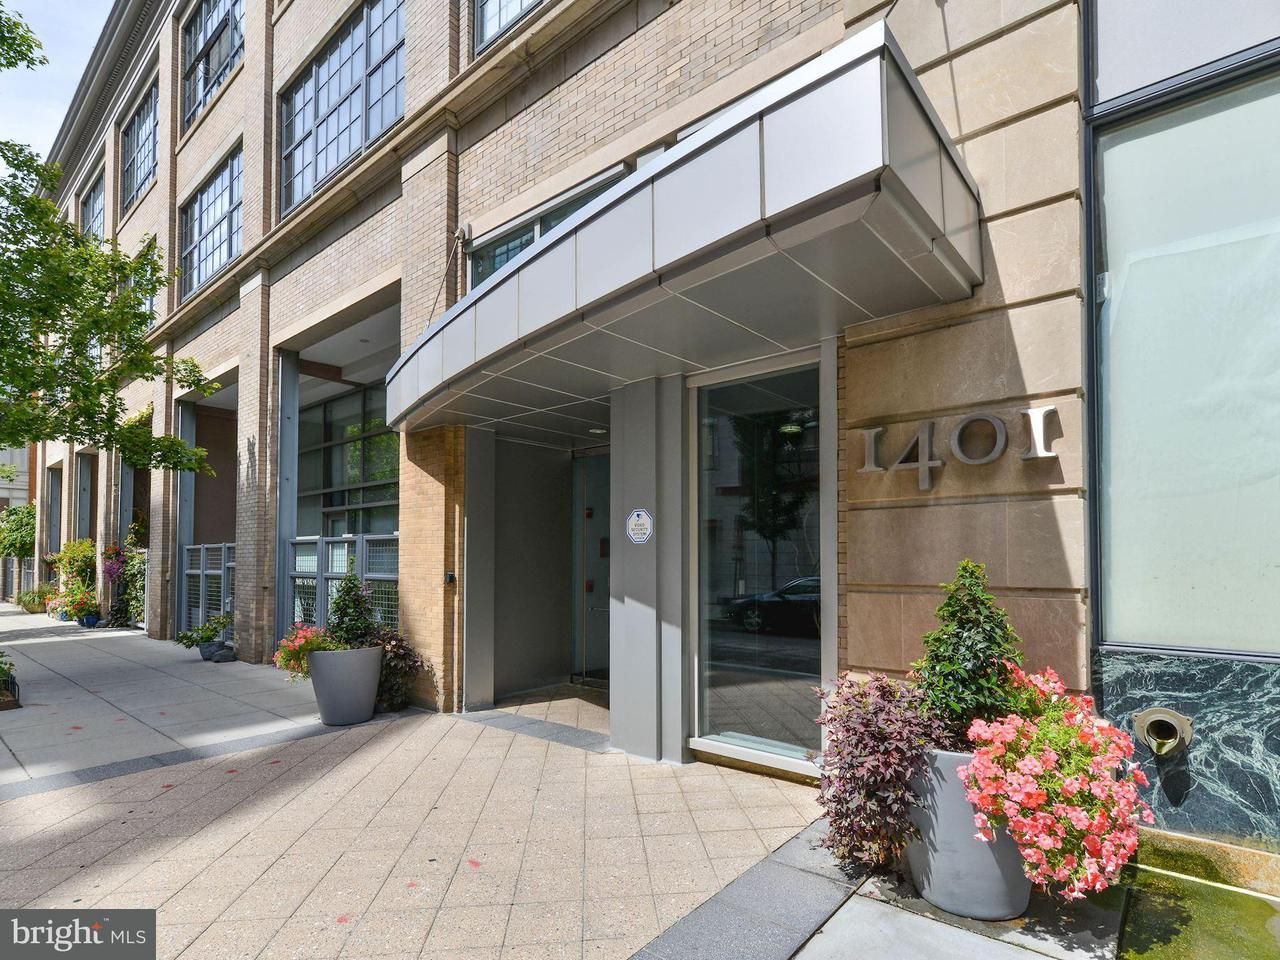 Condominium for Sale at 1401 Church St NW #124 Washington, District Of Columbia 20005 United States